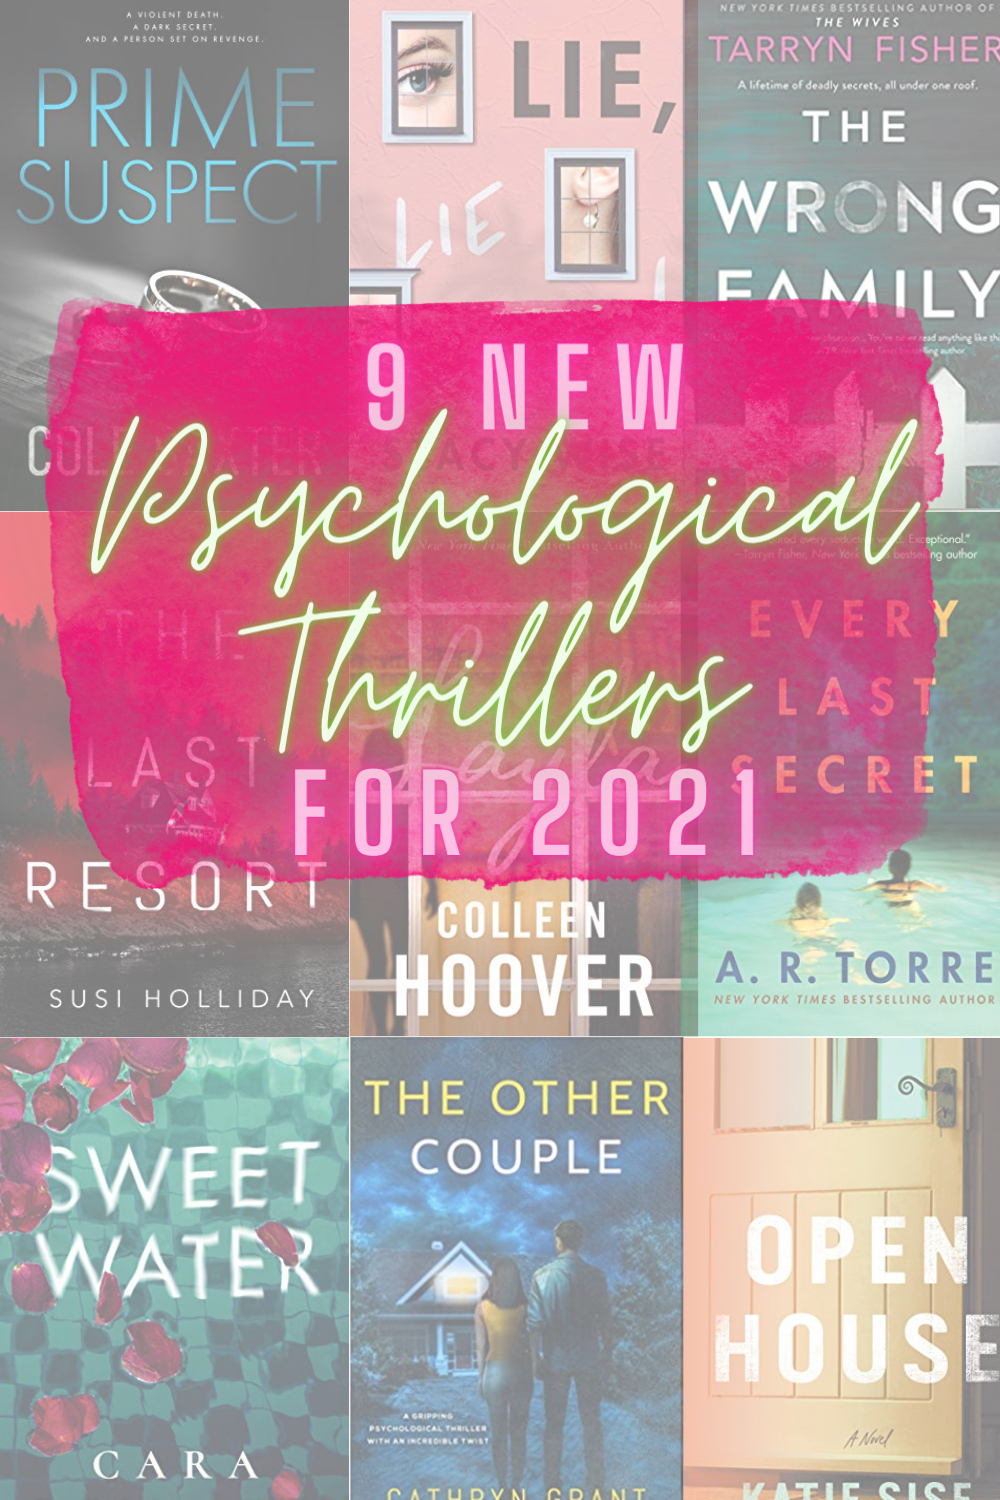 9 NEW PSYCHOLOGICAL THRILLERS FOR 2021 - 9 new psychological thriller books to read this year that will keep you on the edge of your seat!